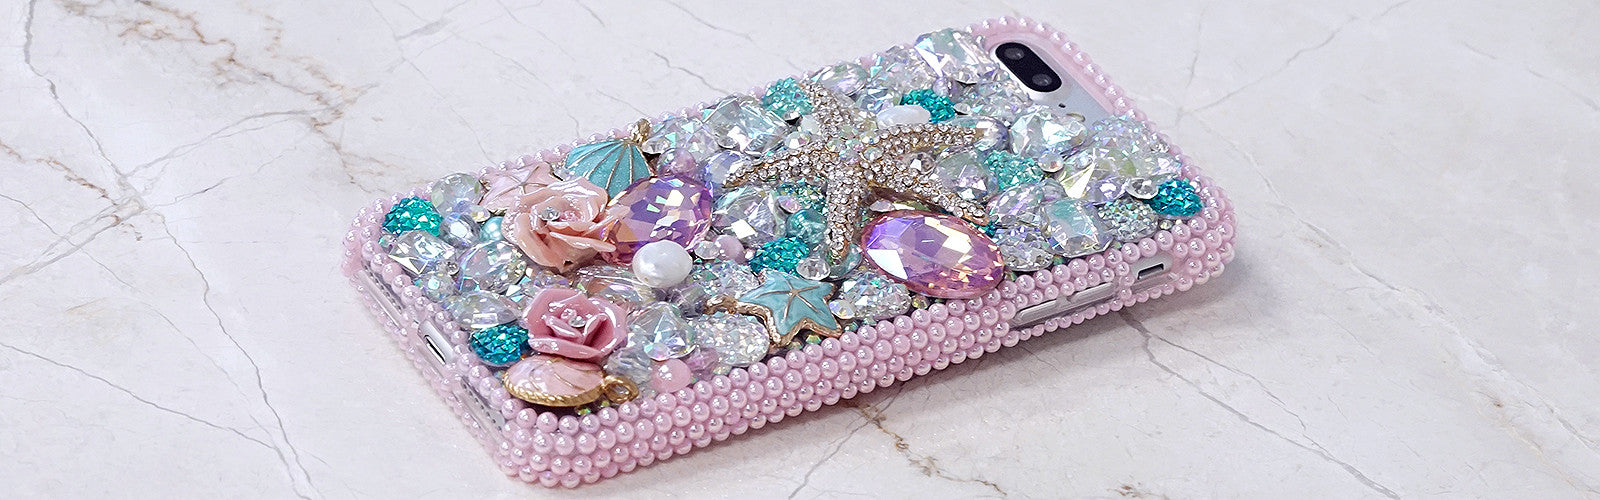 bling iphone 7 Plus case